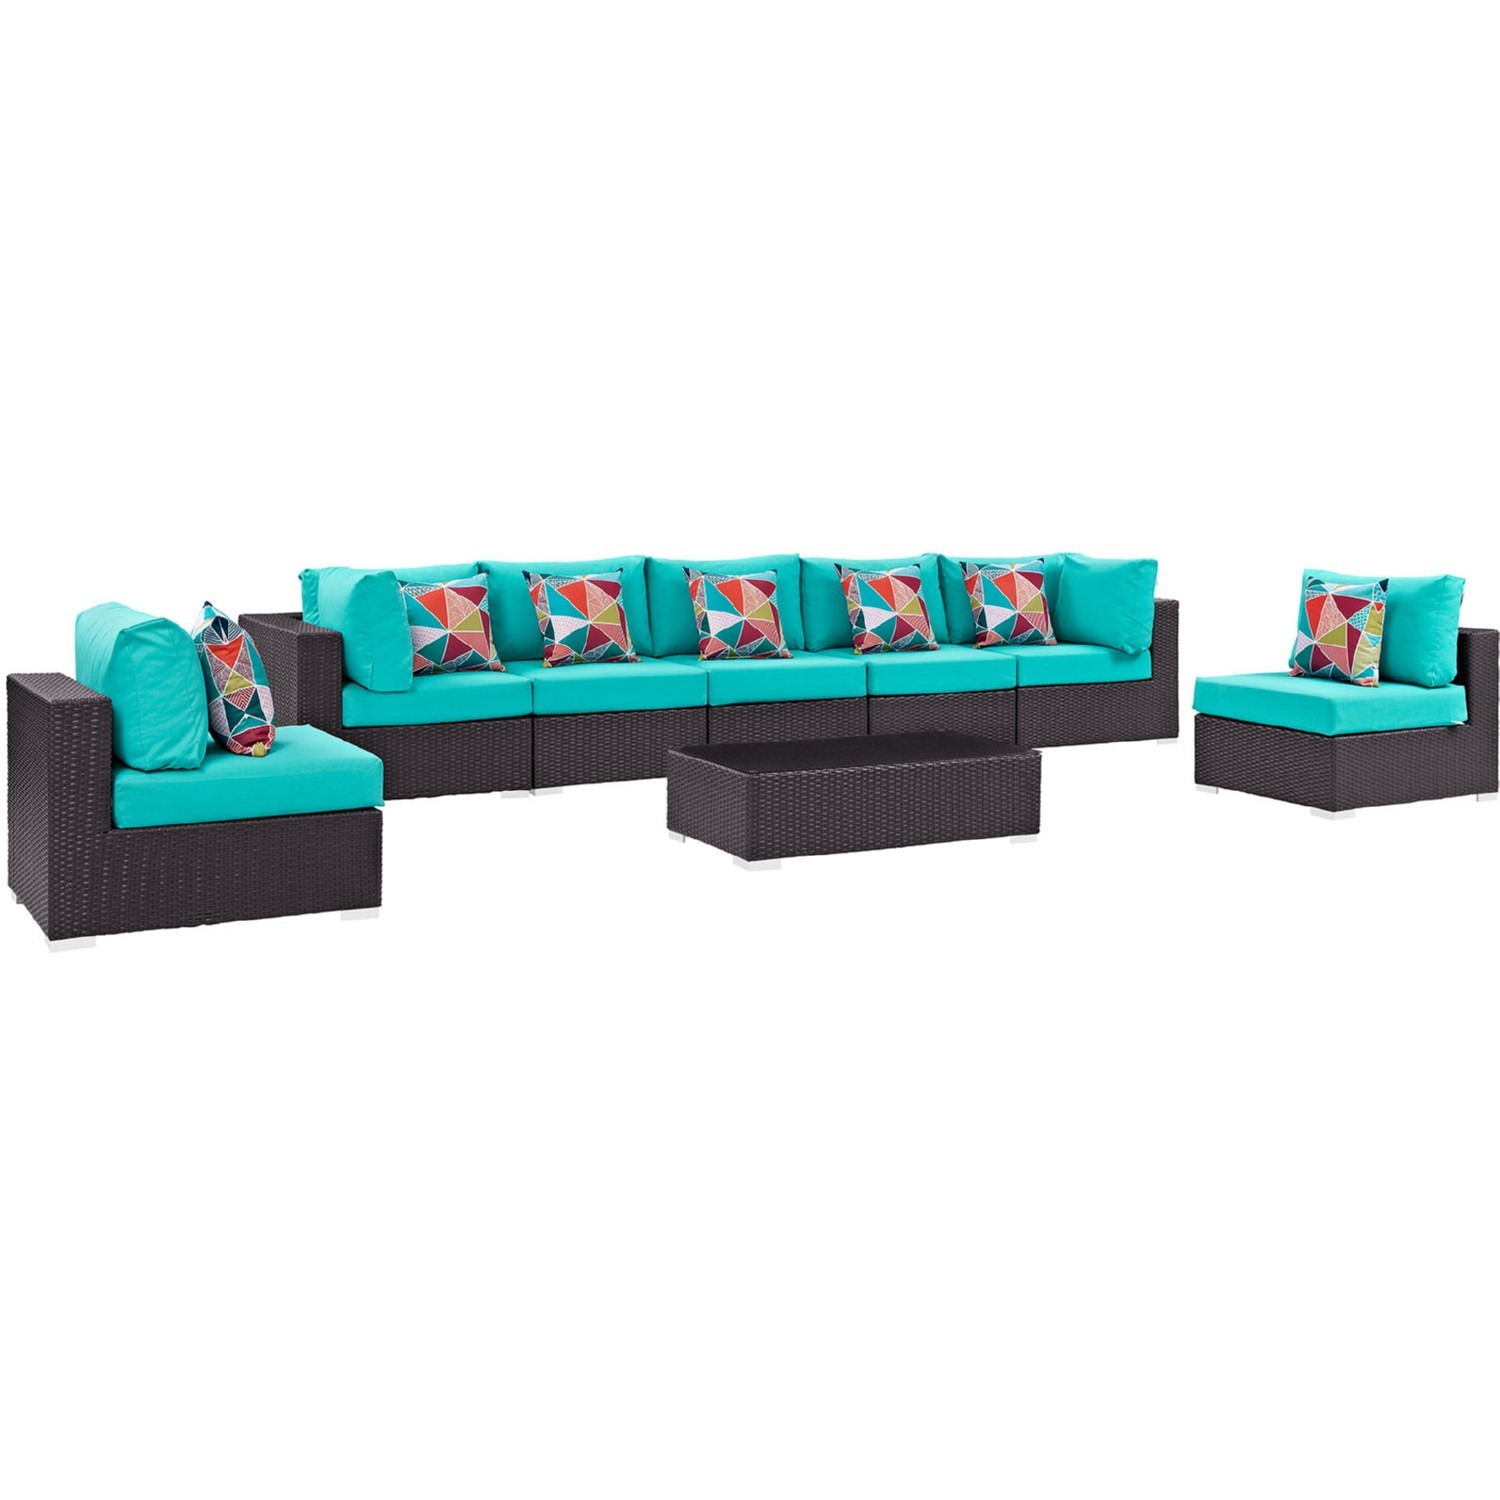 8-Piece Outdoor Sectional In Turquoise Cushion - image-0